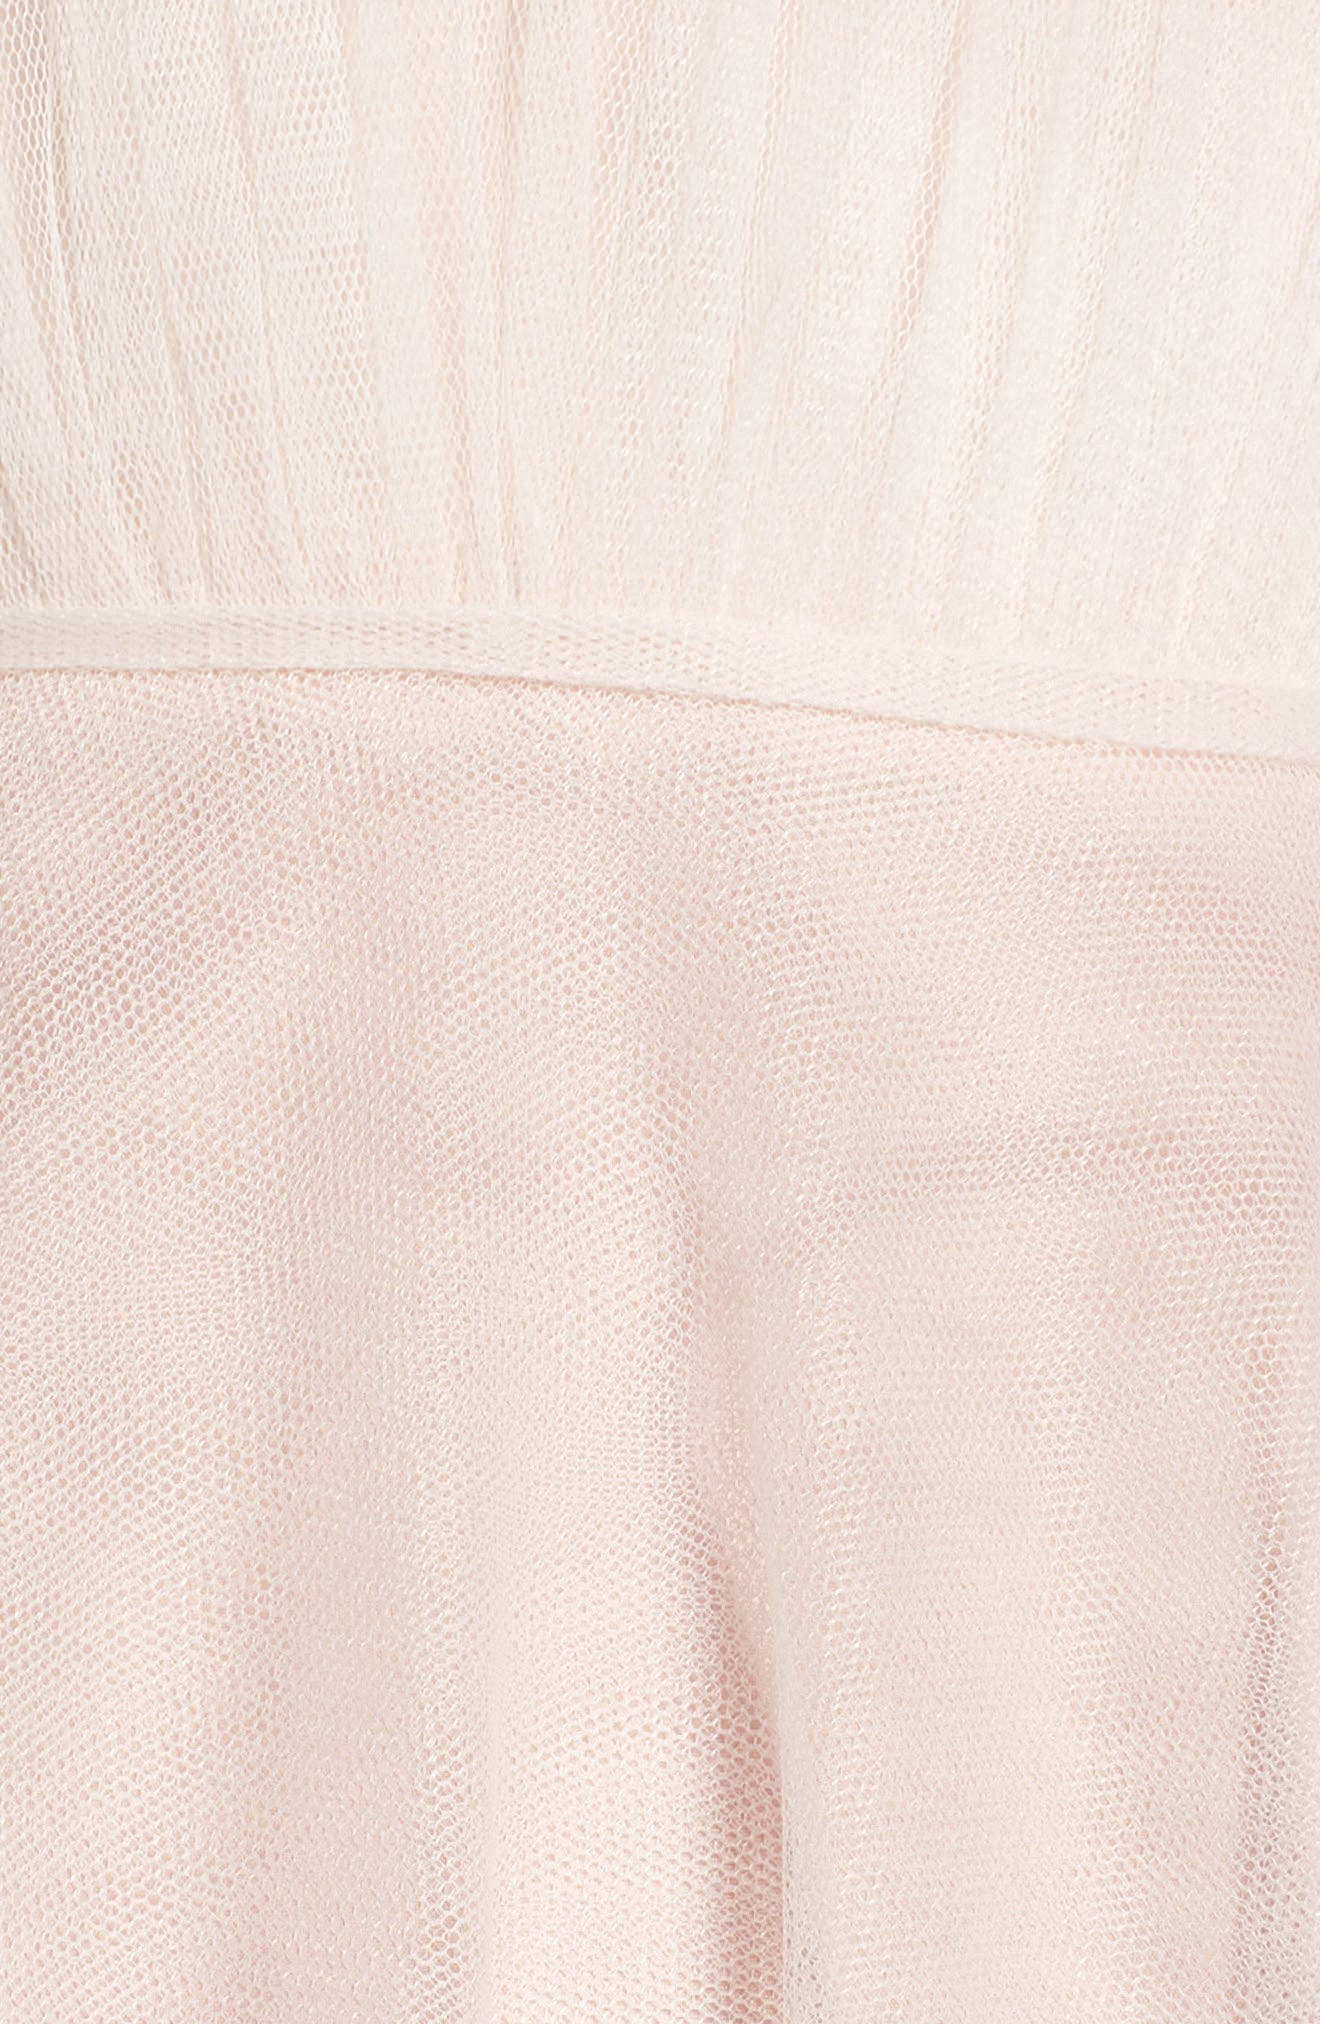 Plunging A-Line Gown,                             Alternate thumbnail 5, color,                             IVORY/TEA ROSE